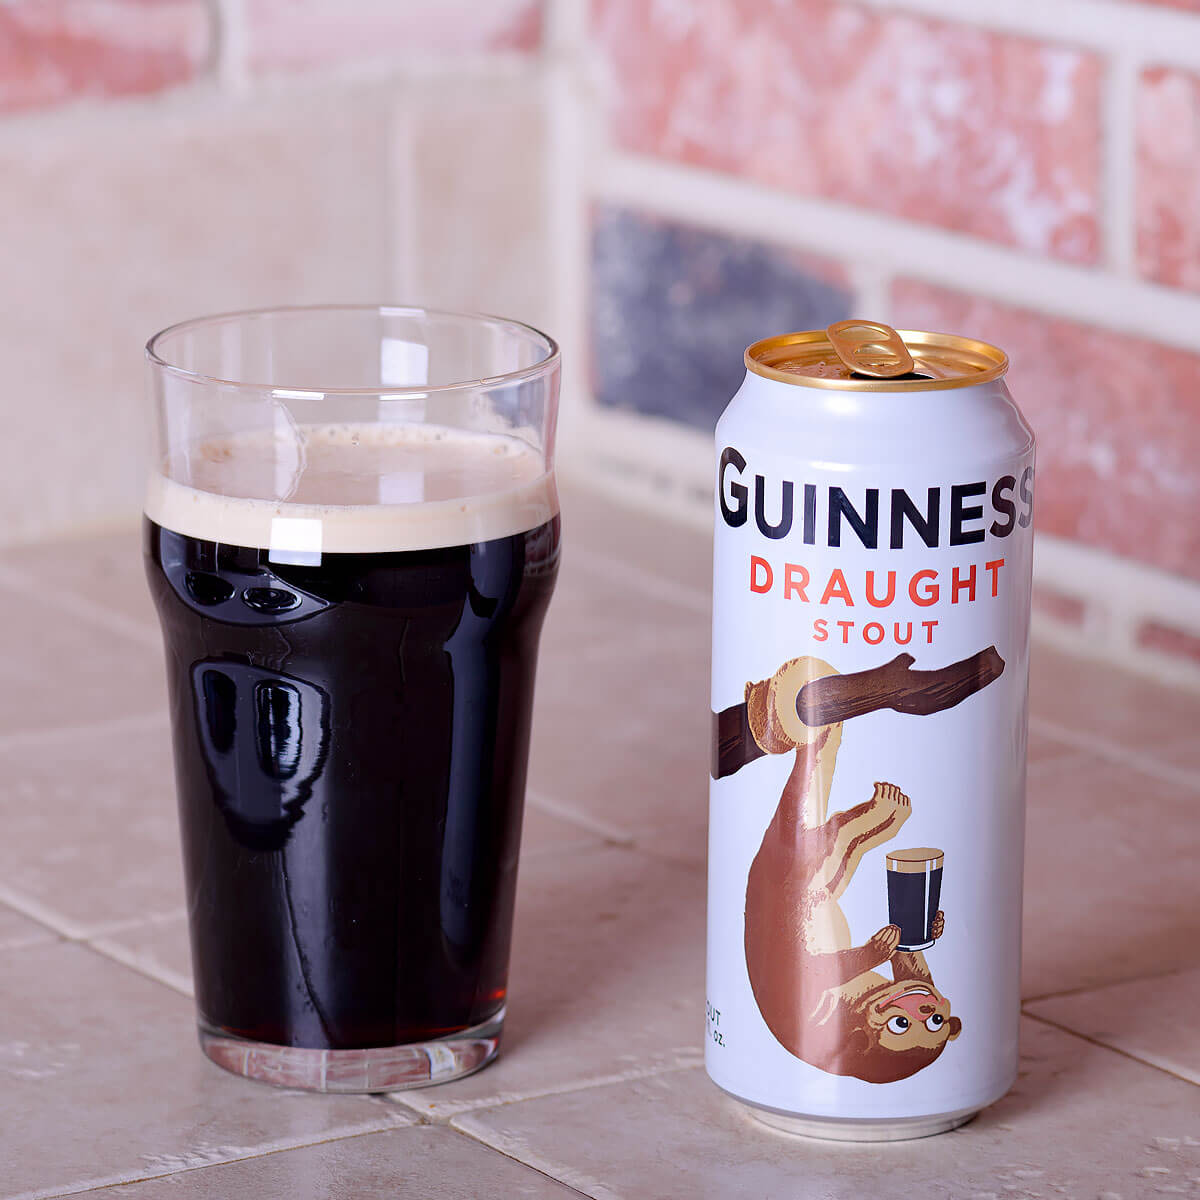 Guinness Draught, an Irish Dry Stout brewed by Guinness Ltd.